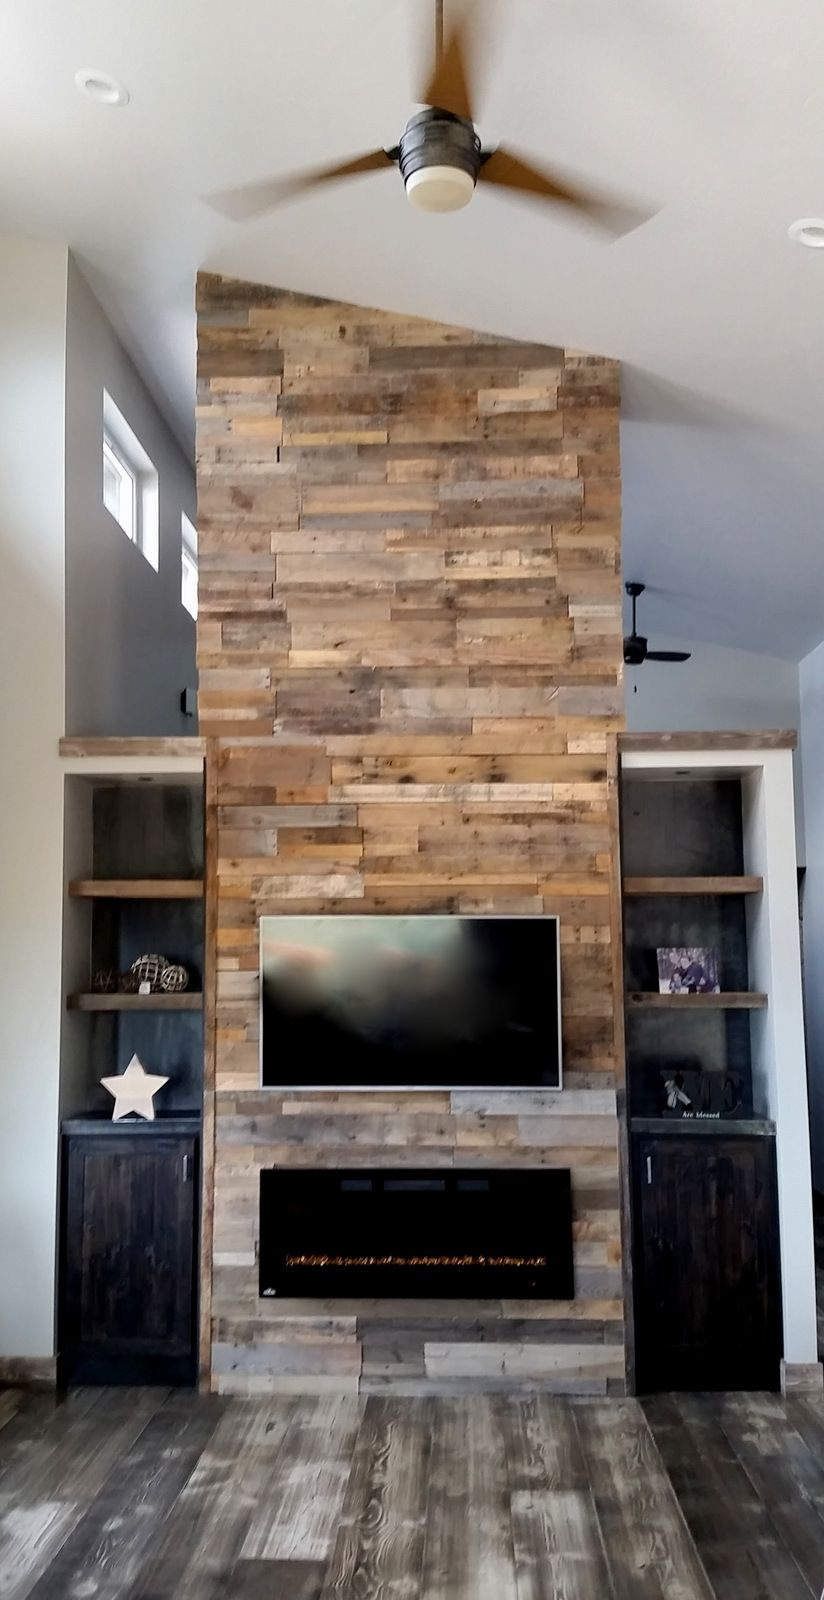 Our Prefab Wall Panels are an inexpensive great